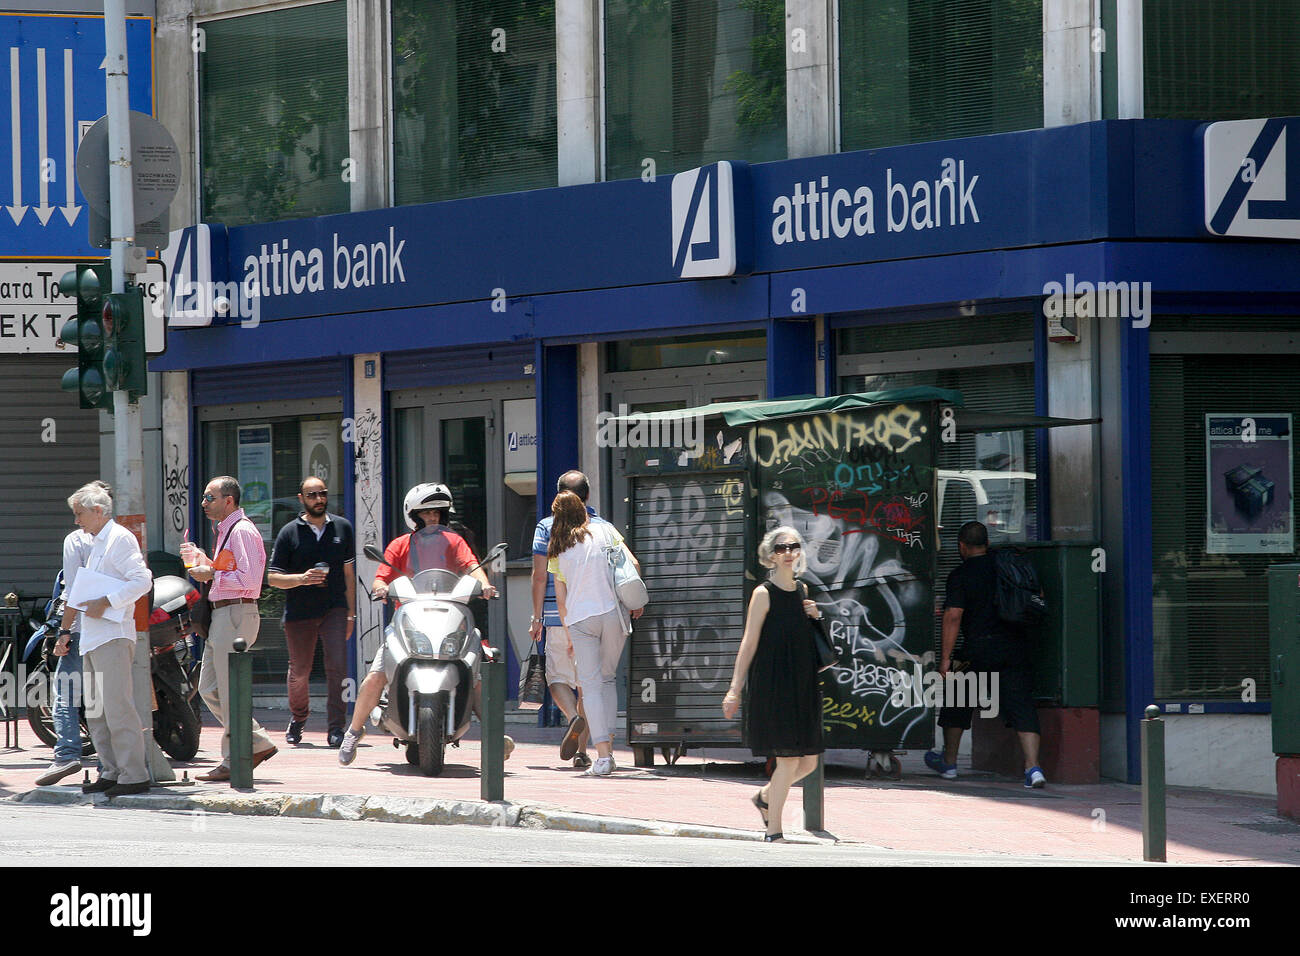 Athens, Greece. 13th July, 2015. People walk in front of a bank in Athens, Greece, July 13, 2015. The eurozone summit - Stock Image